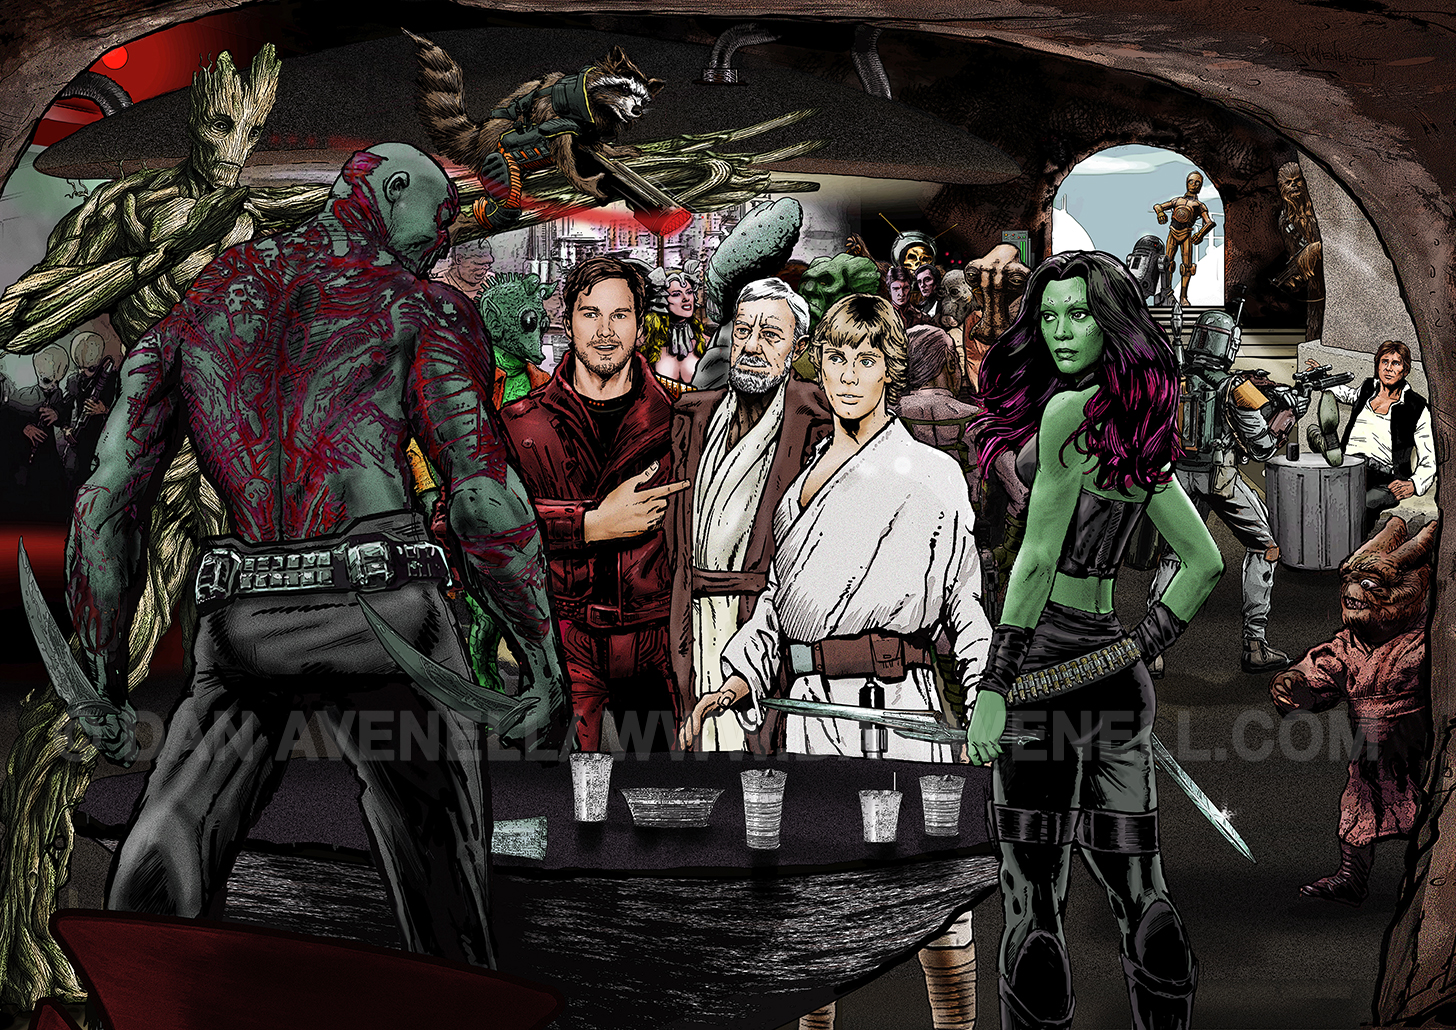 Guardians In A Galaxy Far, Far Away by Dan Avenell. Click to enlarge.